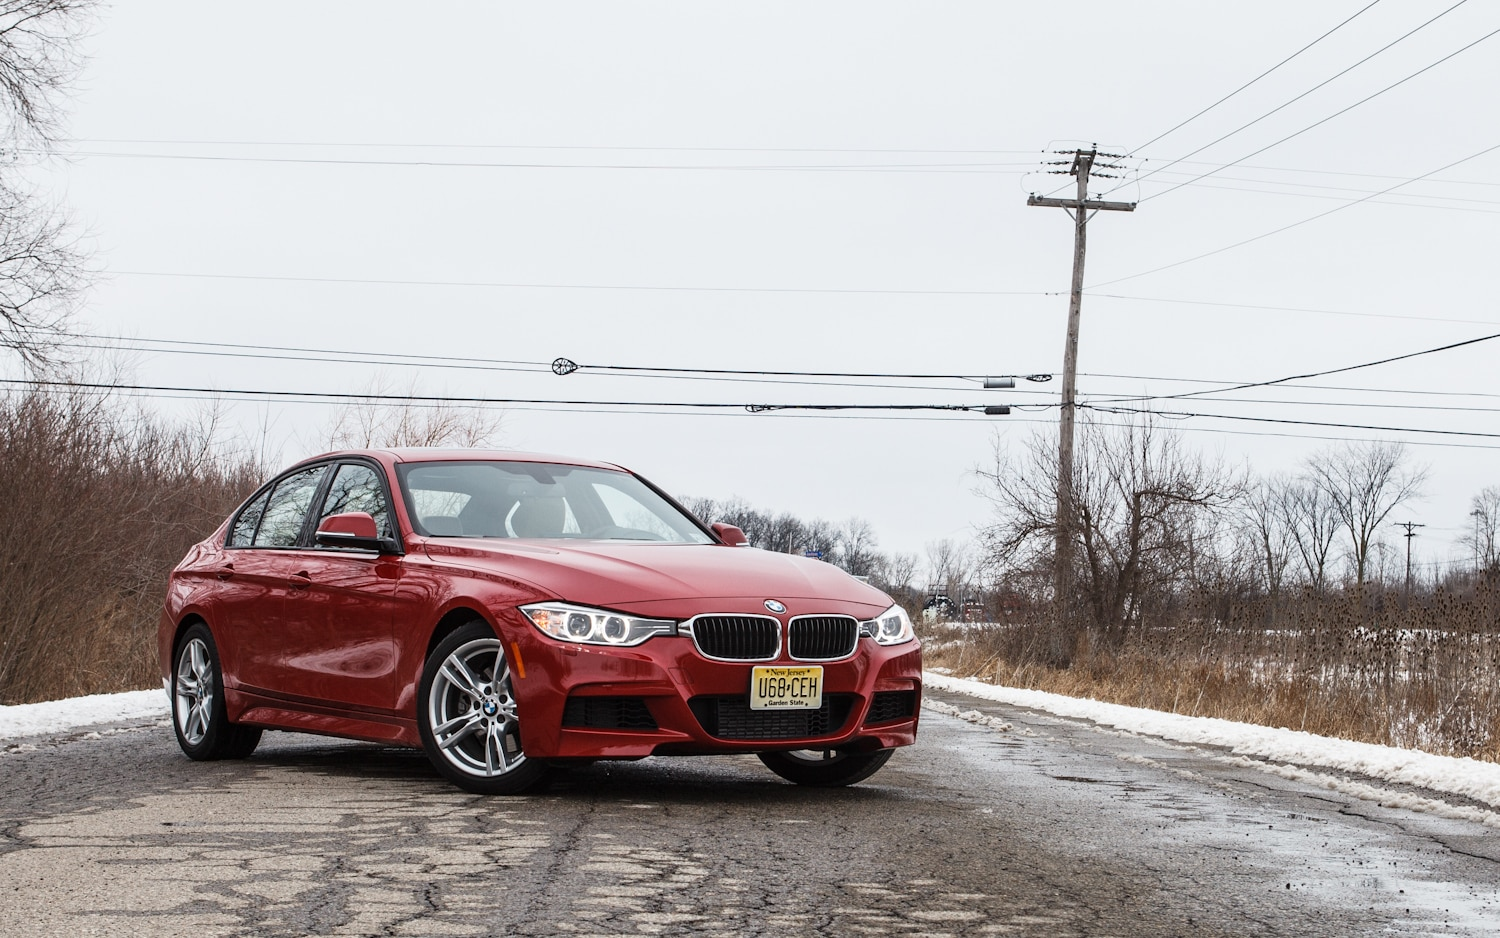 2013 BMW 328i Sport Automatic Front Right View 11